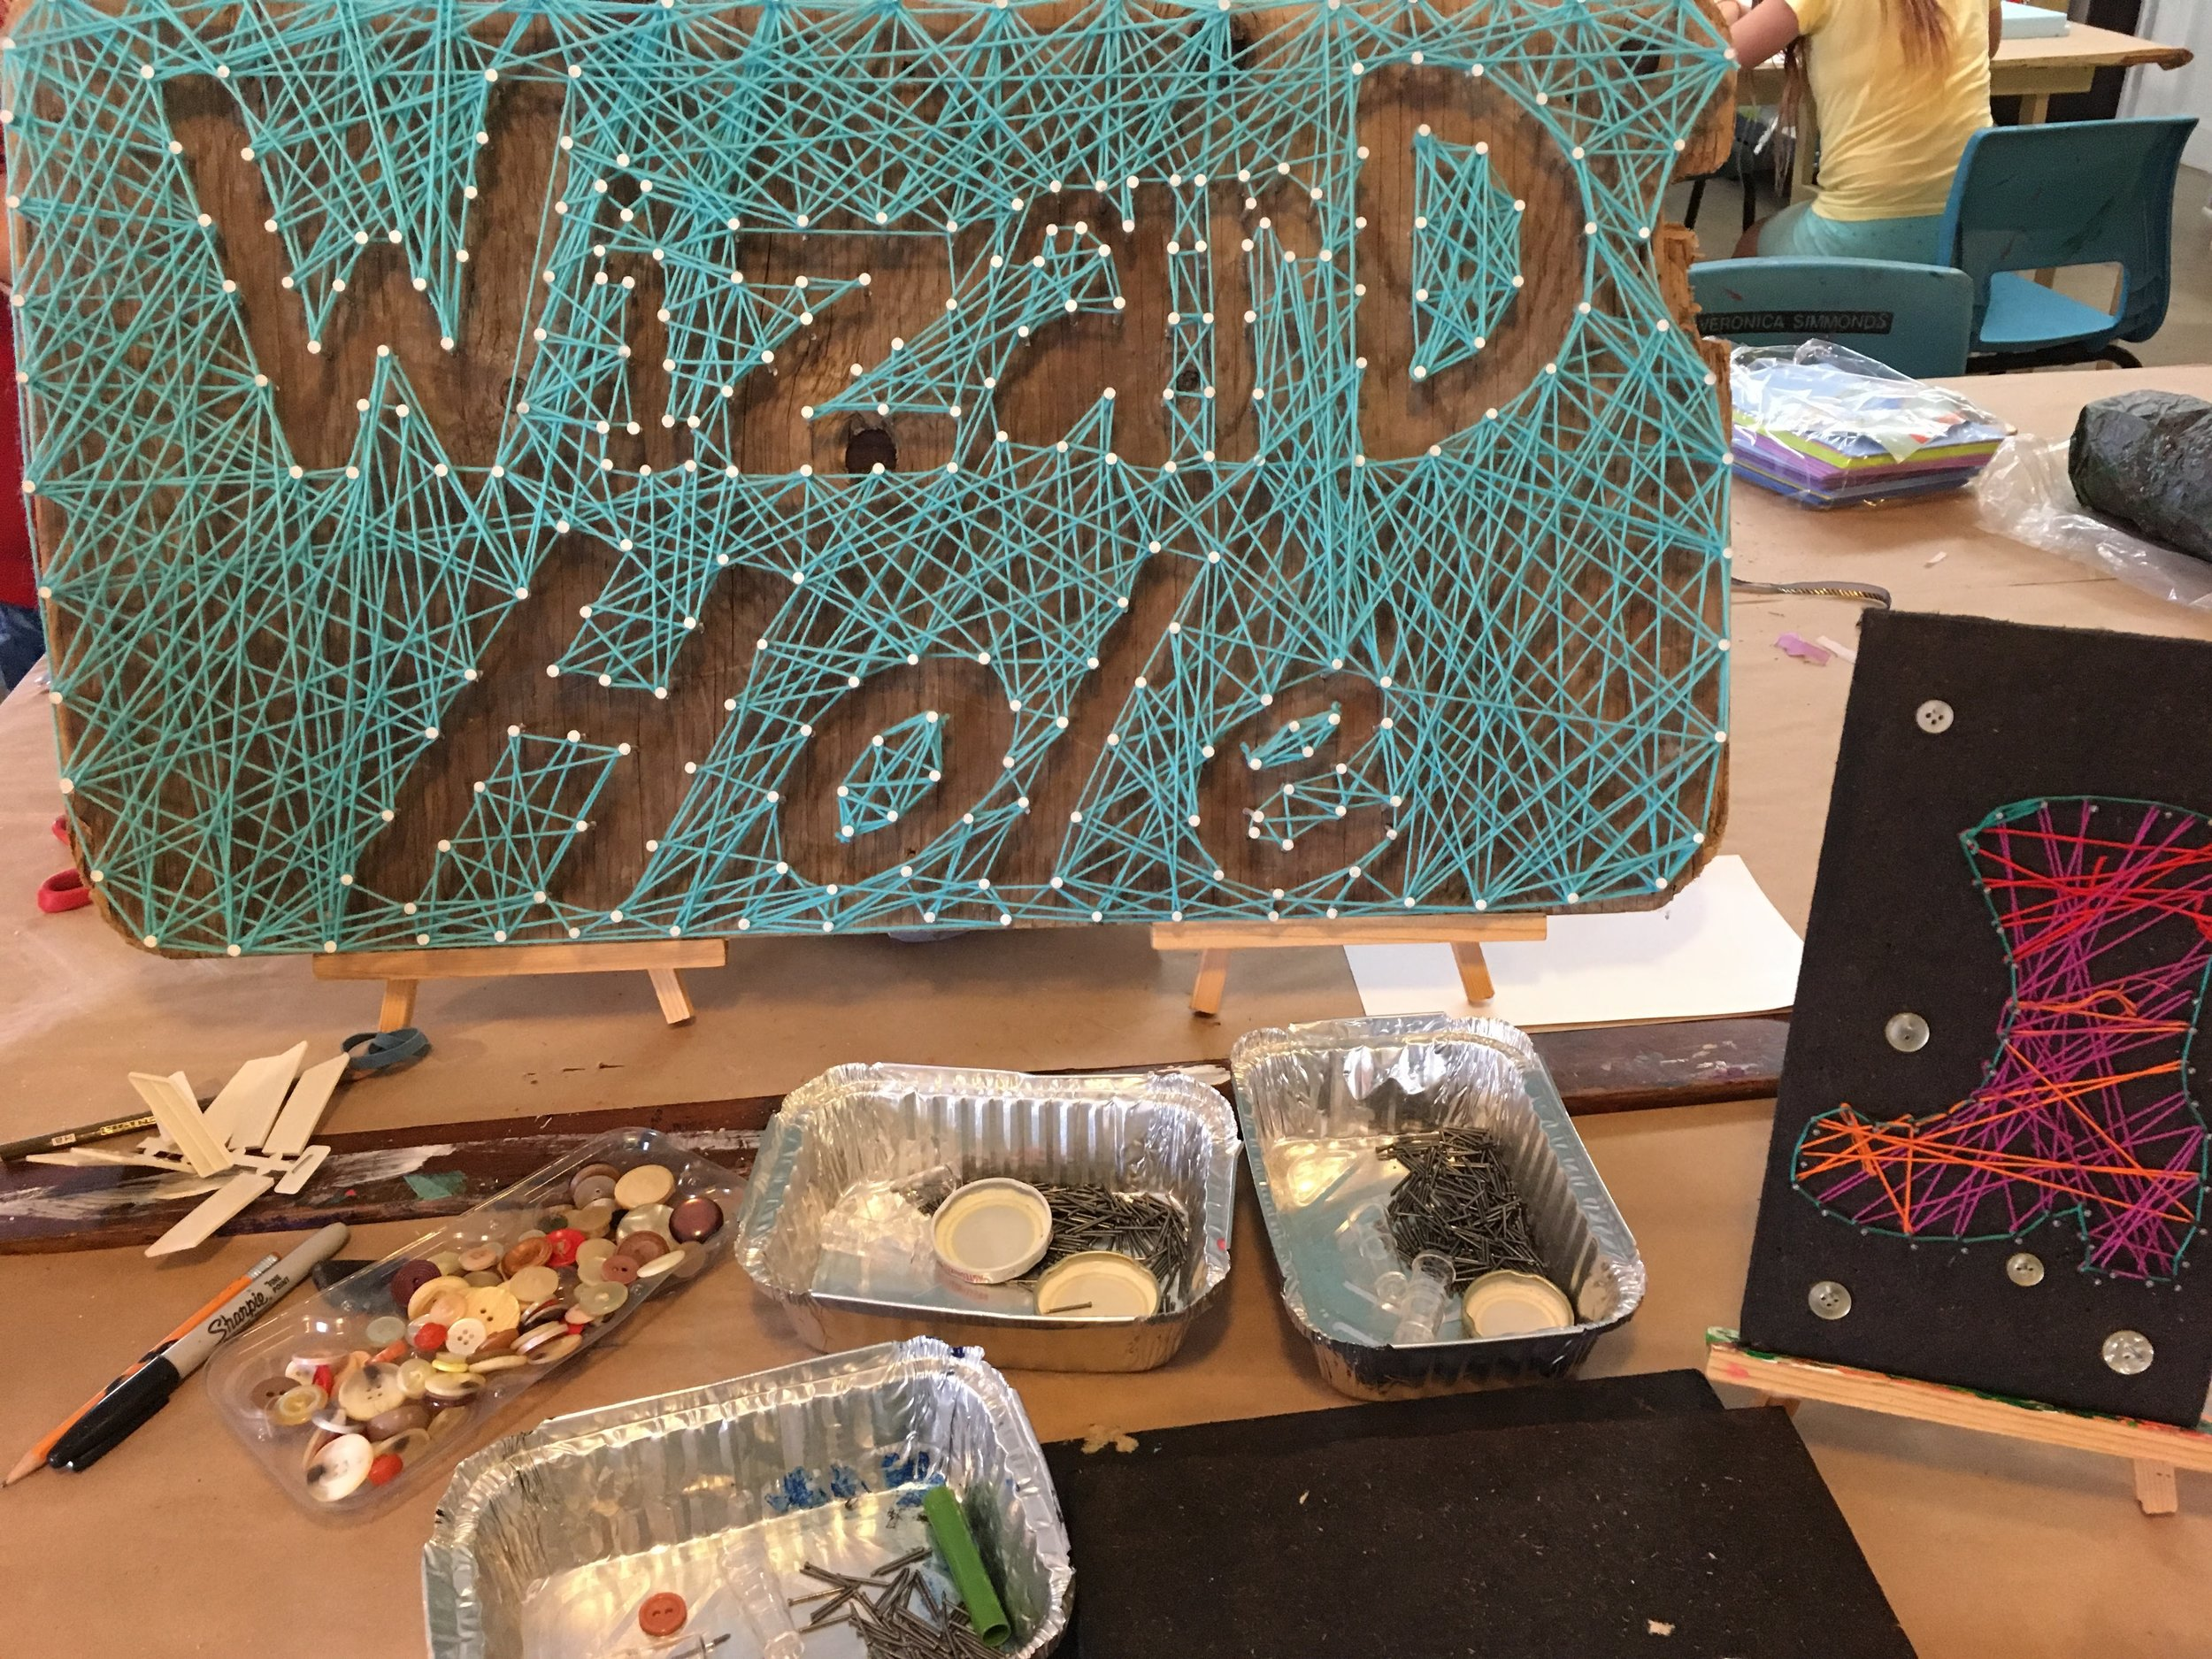 Some days we invent or research really interesting projects to share during Open Studio.  On other days we are rushing to transition the studio from one event to another and we end up looking around for inspiration. Luckily, we share the space with incredibly creative (and weird) folks like the wizards (aka ceramic artists).  Thanks for sharing this awesome sign with us on our string art exploration day!